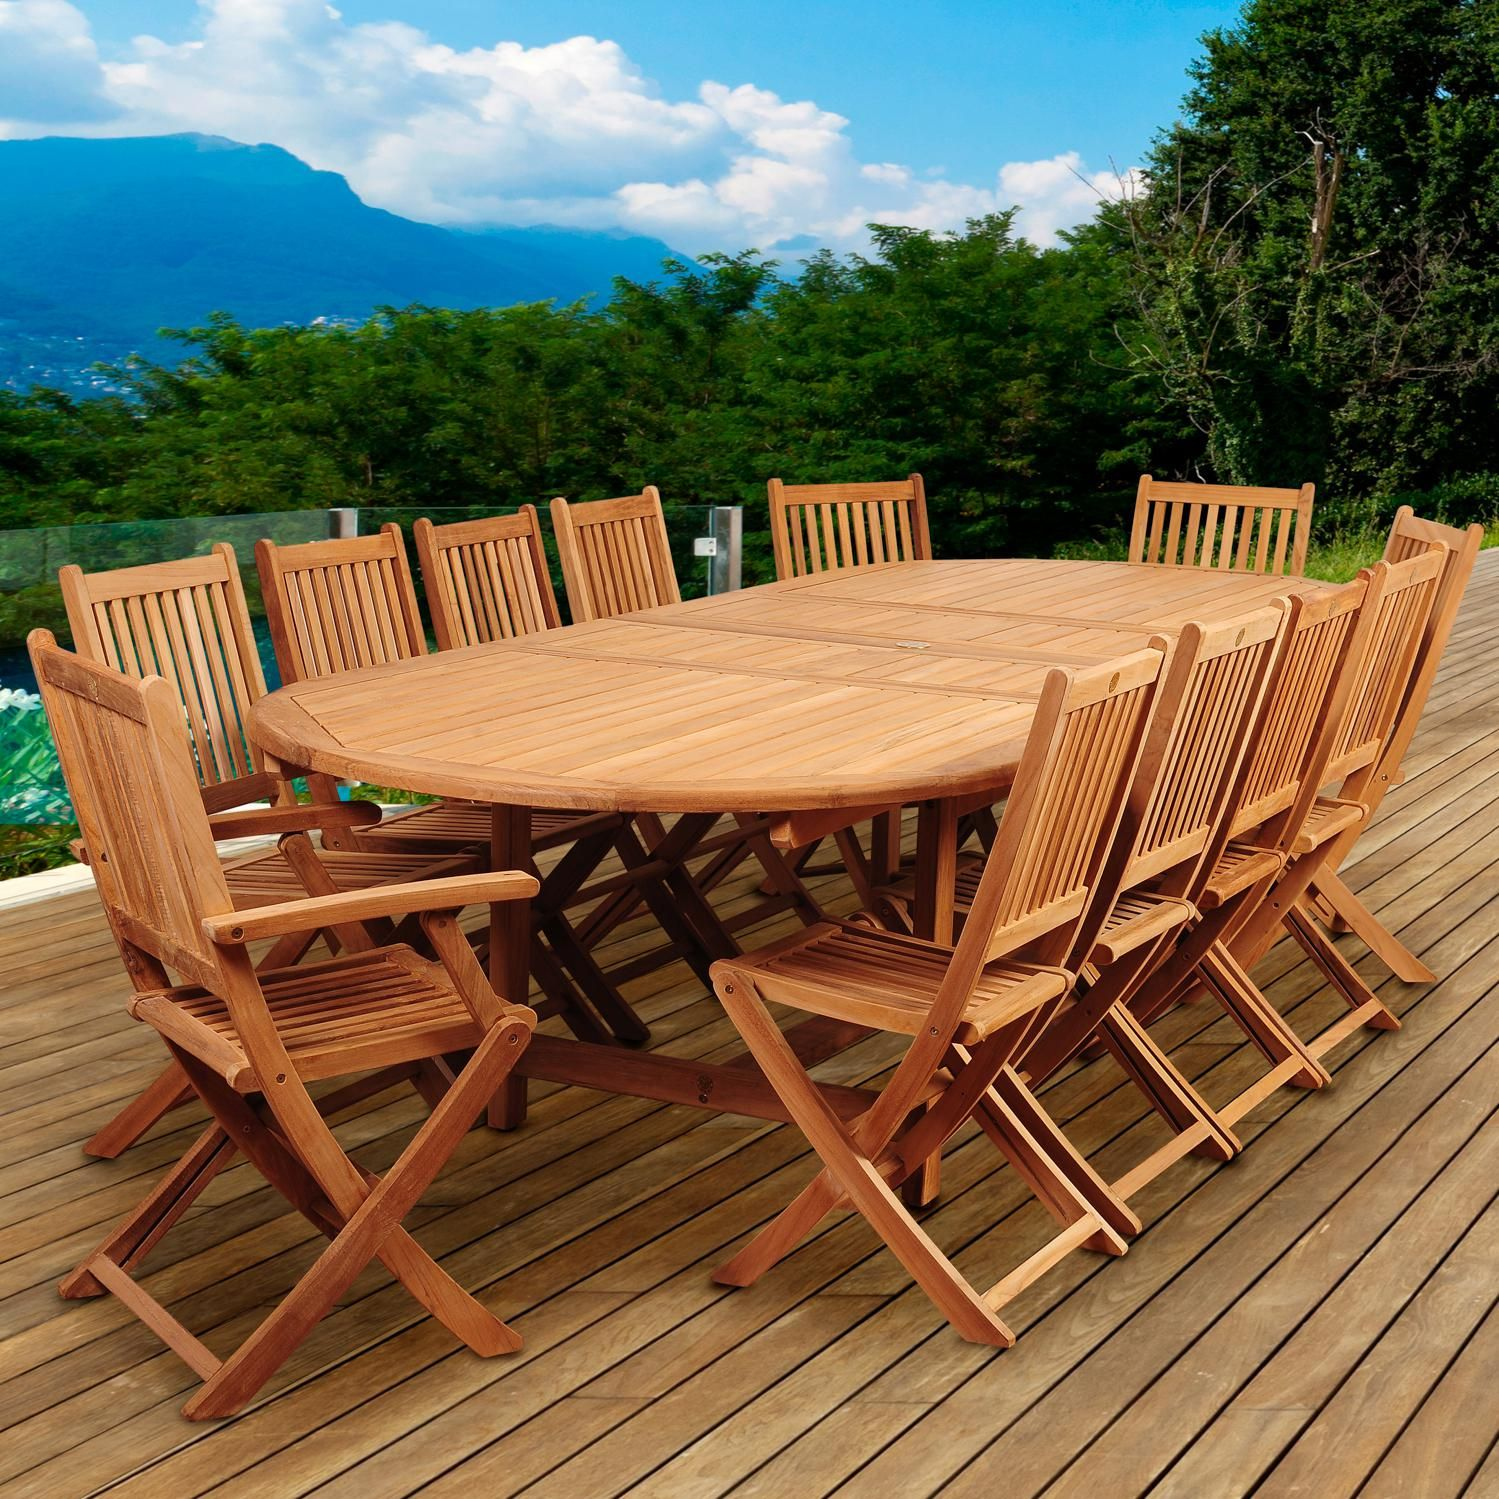 amazonia extendable 7 piece patio dining set. amazonia highland park 12-person teak patio dining set with folding chairs and extension table extendable 7 piece s